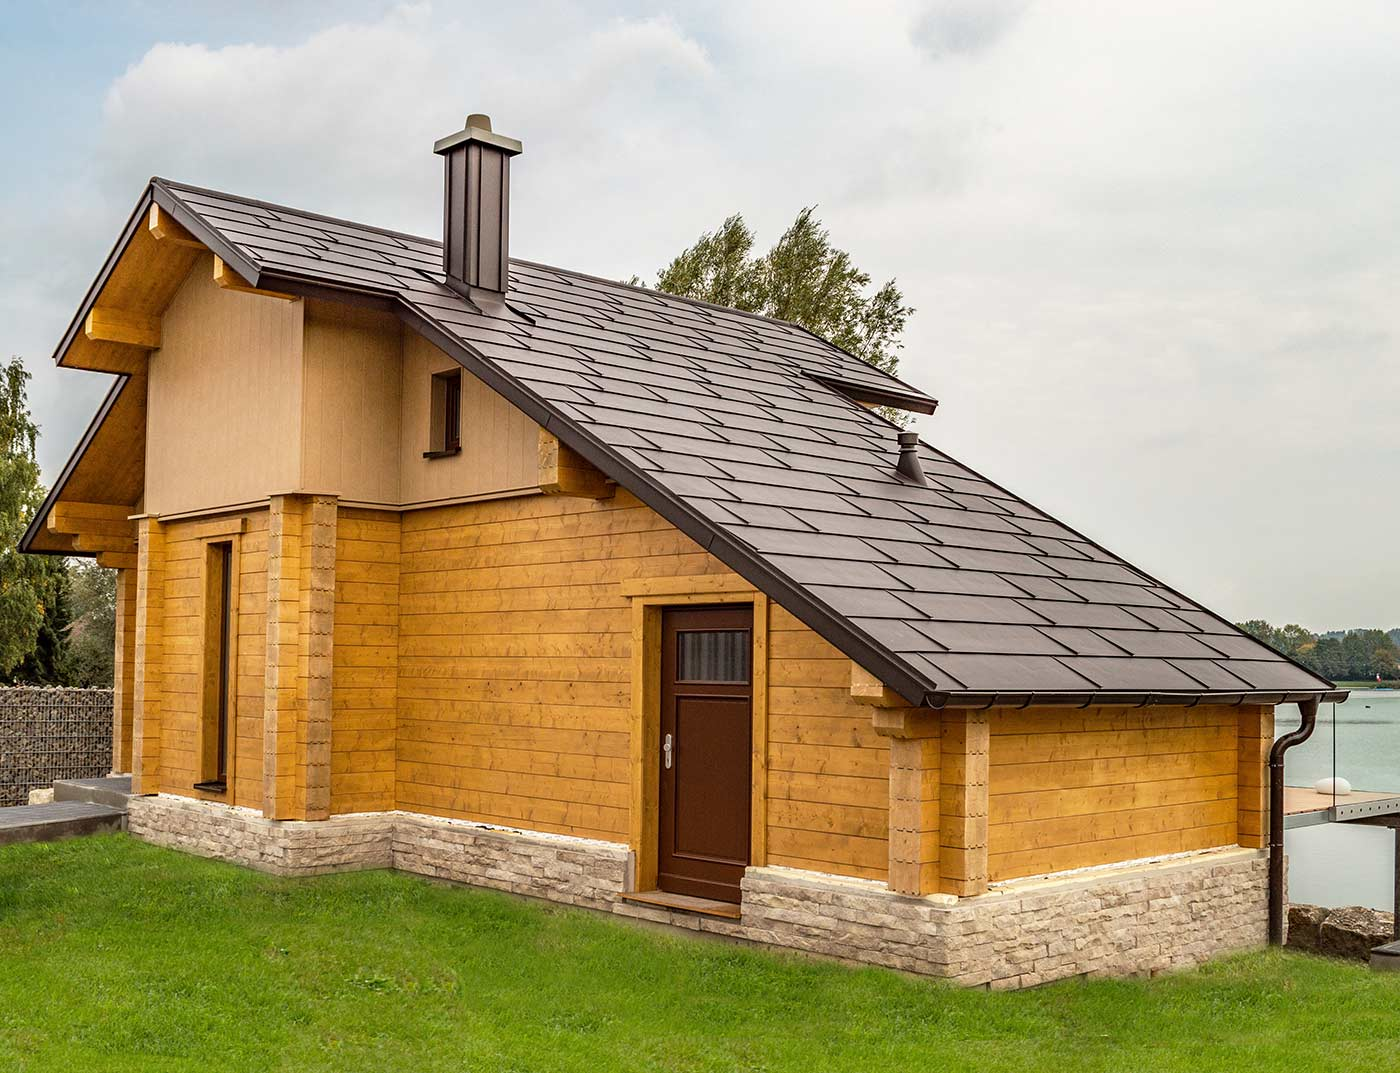 Lakeside house with PREFA FX.12 roof panels in nut brown and façade cladding in sand brown and wood.